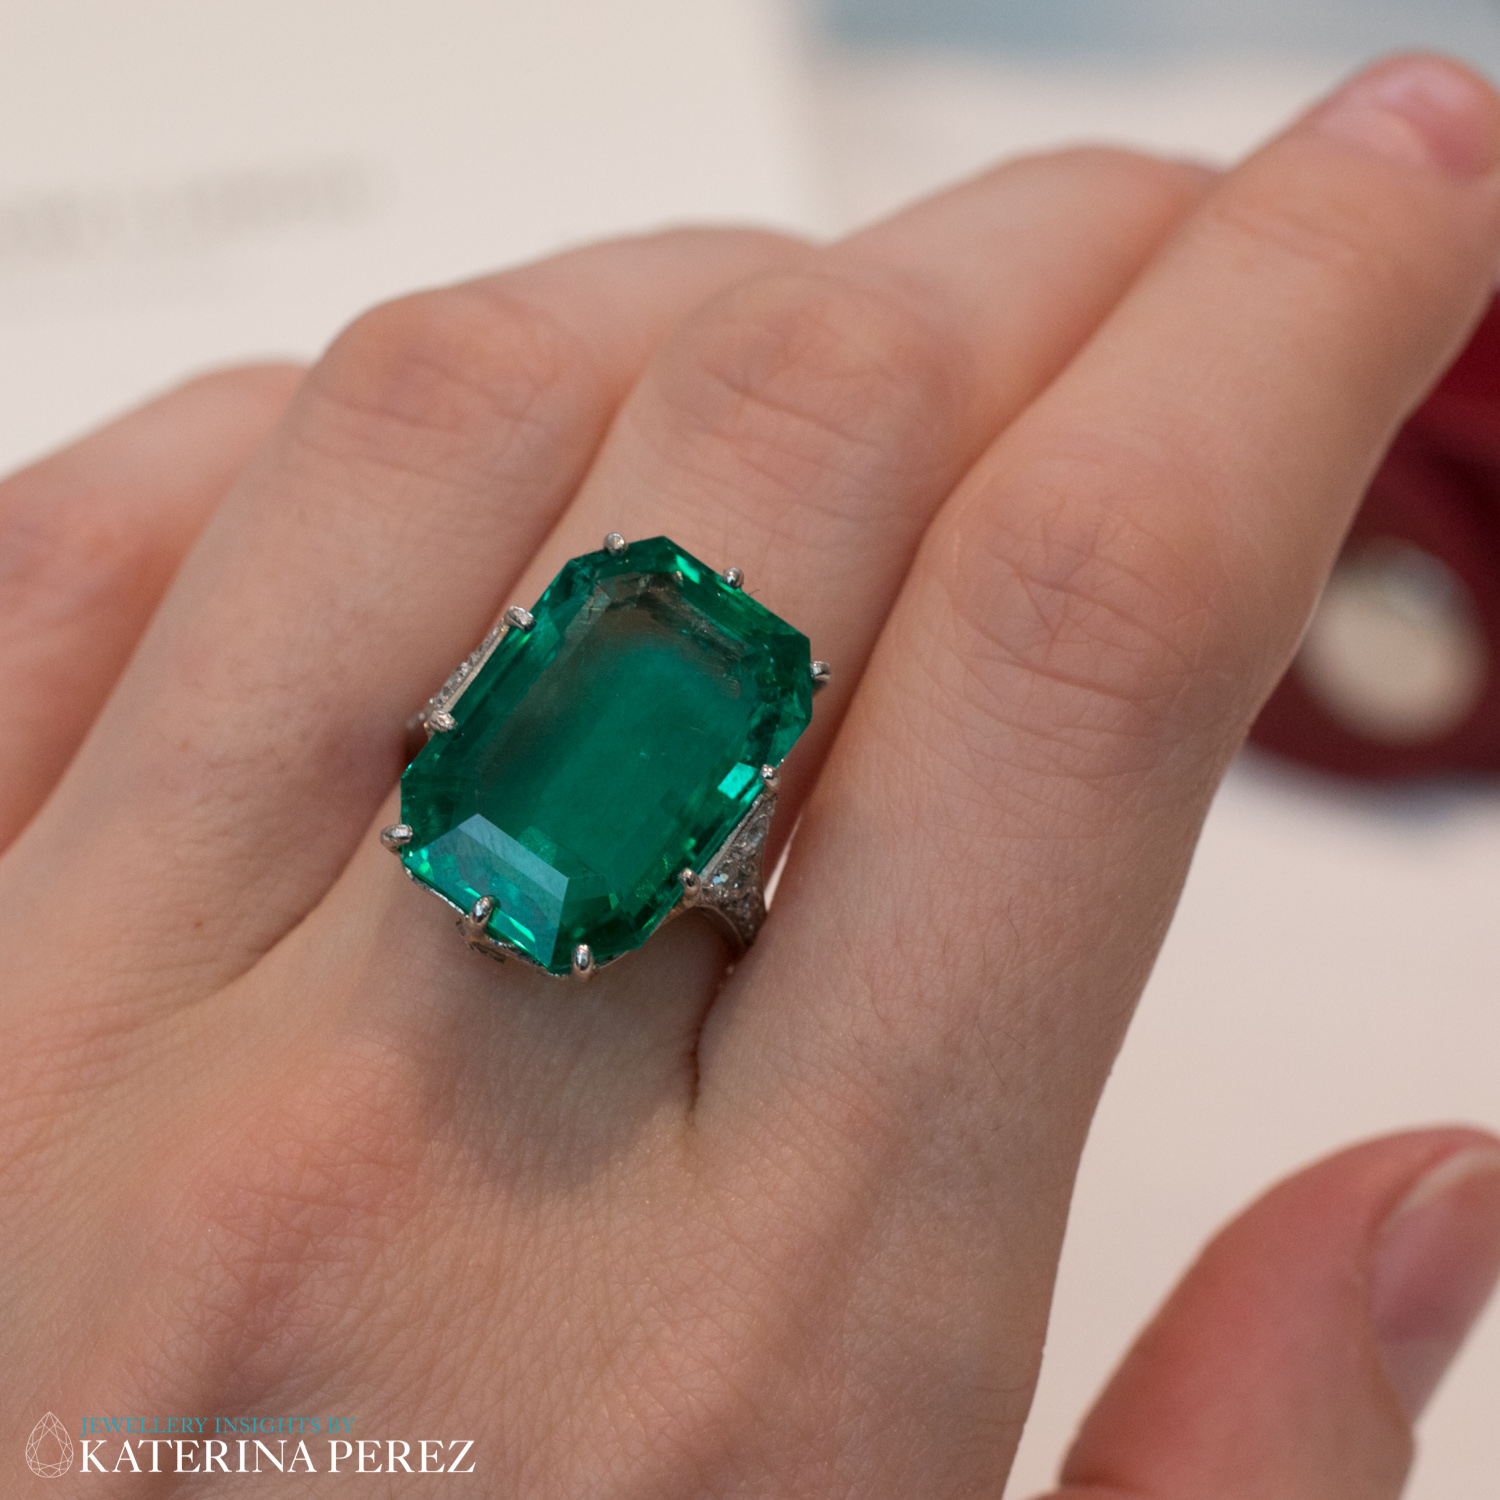 Art Deco Single Stone Emerald Ring, Circa 1920. Featuring step-cut emerald, weighing 14.70 carats and decorated with rose cut diamonds